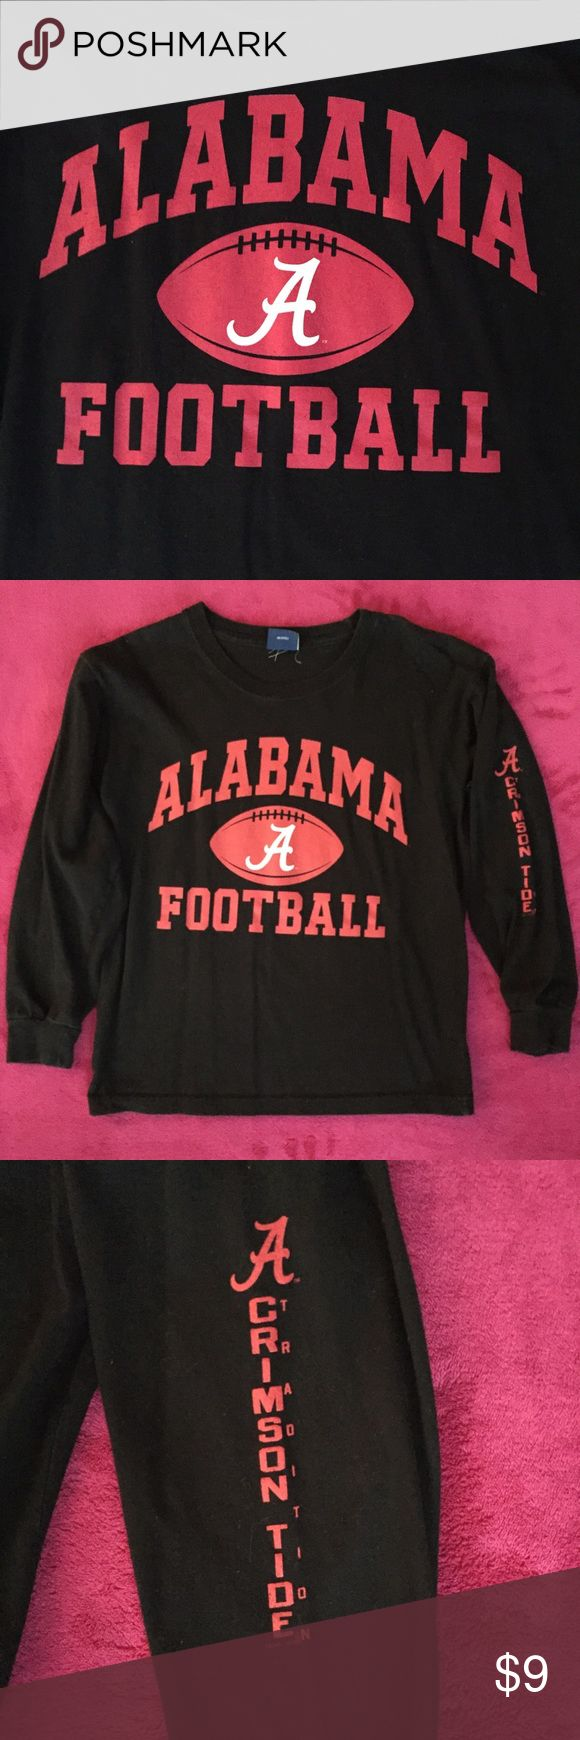 BLACK LOBH SLEEVE ALABAMA FOOTBALL TSHIRT Black, long sleeve Tshirt with Alabama Football across the front in red and Crimson Tide in red down one sleeve. Shirt is in great condition. OVB Old Varsity Brand Shirts & Tops